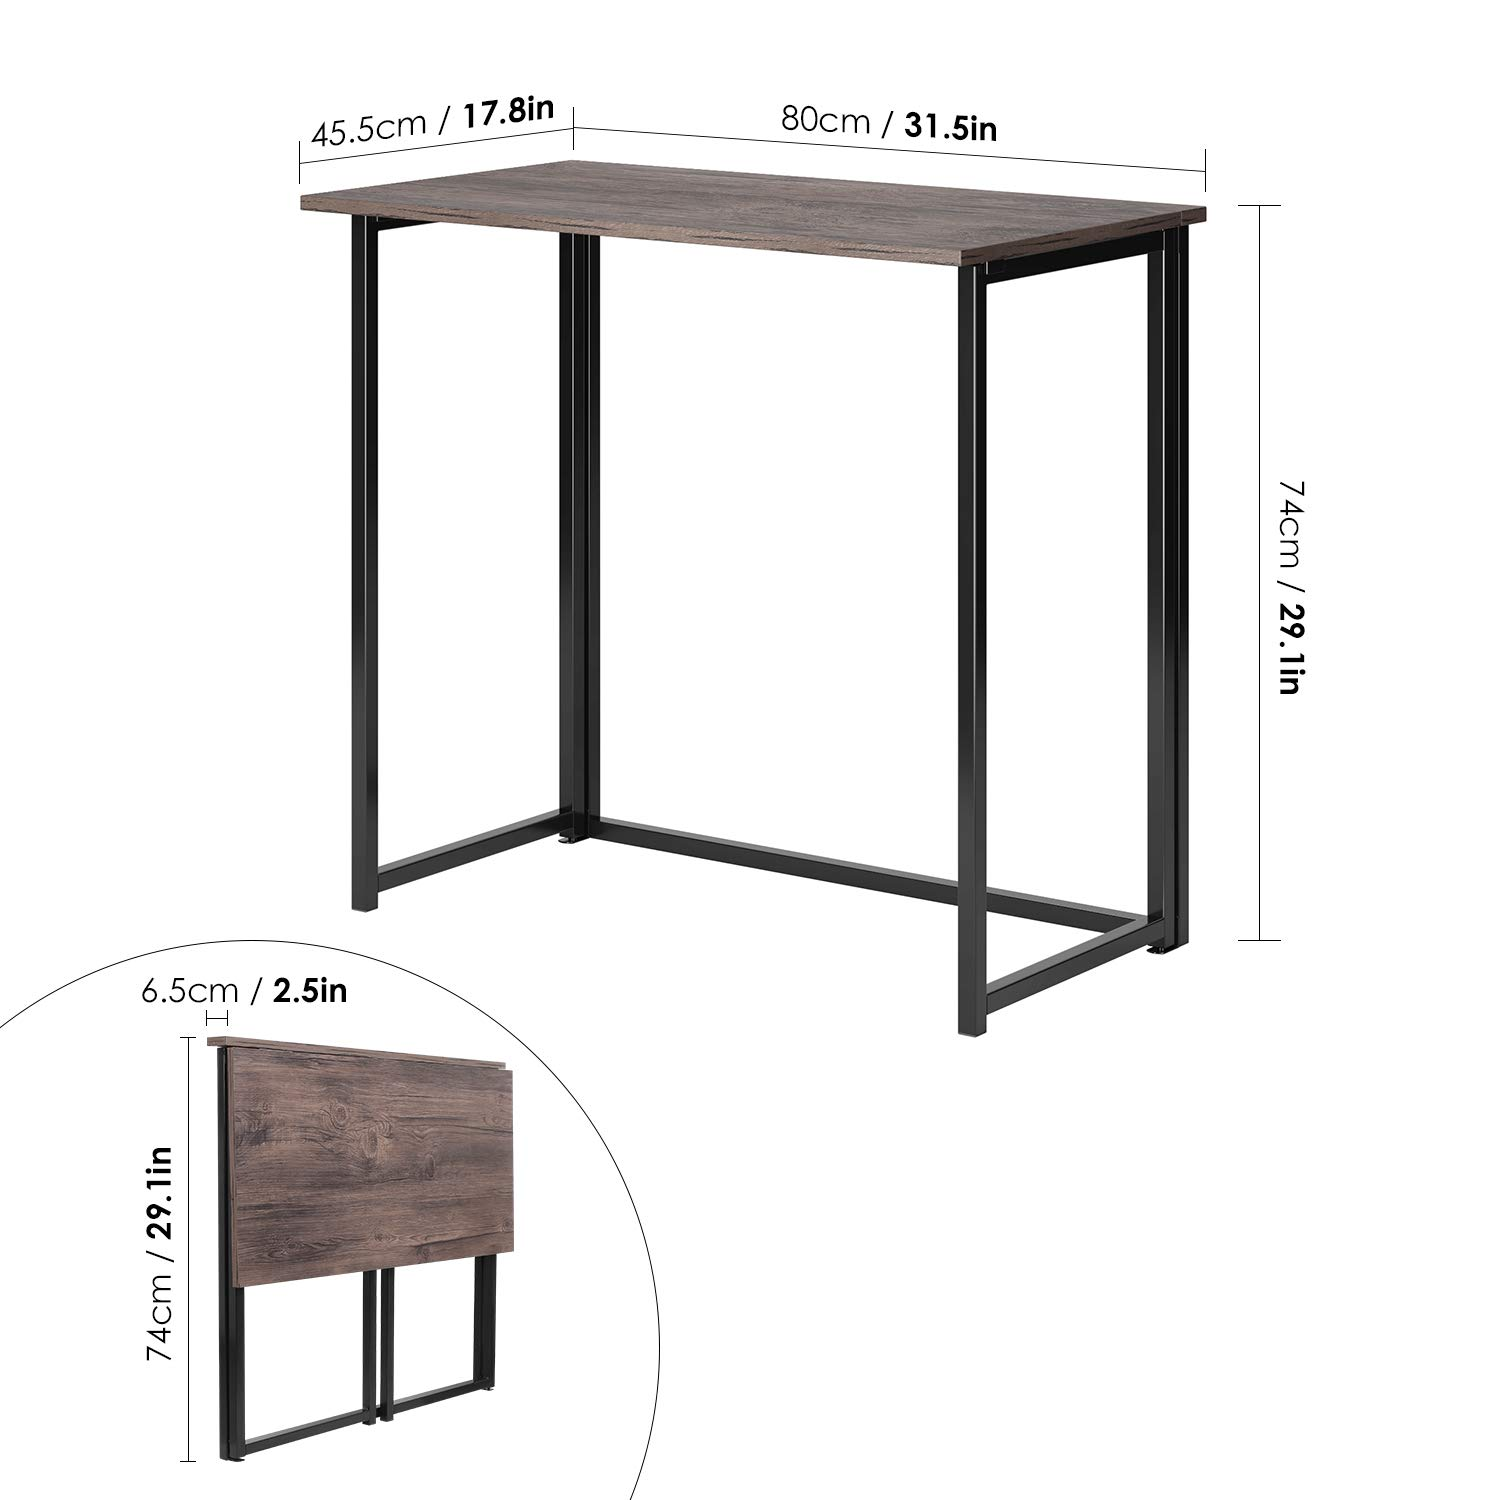 HOMFA Folding Laptop Table, Writing Computer Notebook Desk, Modern Simple Industrial Style TV Tray Bed/Sofa Side Study Table, Space Saving Furniture for Home Office by Homfa (Image #2)